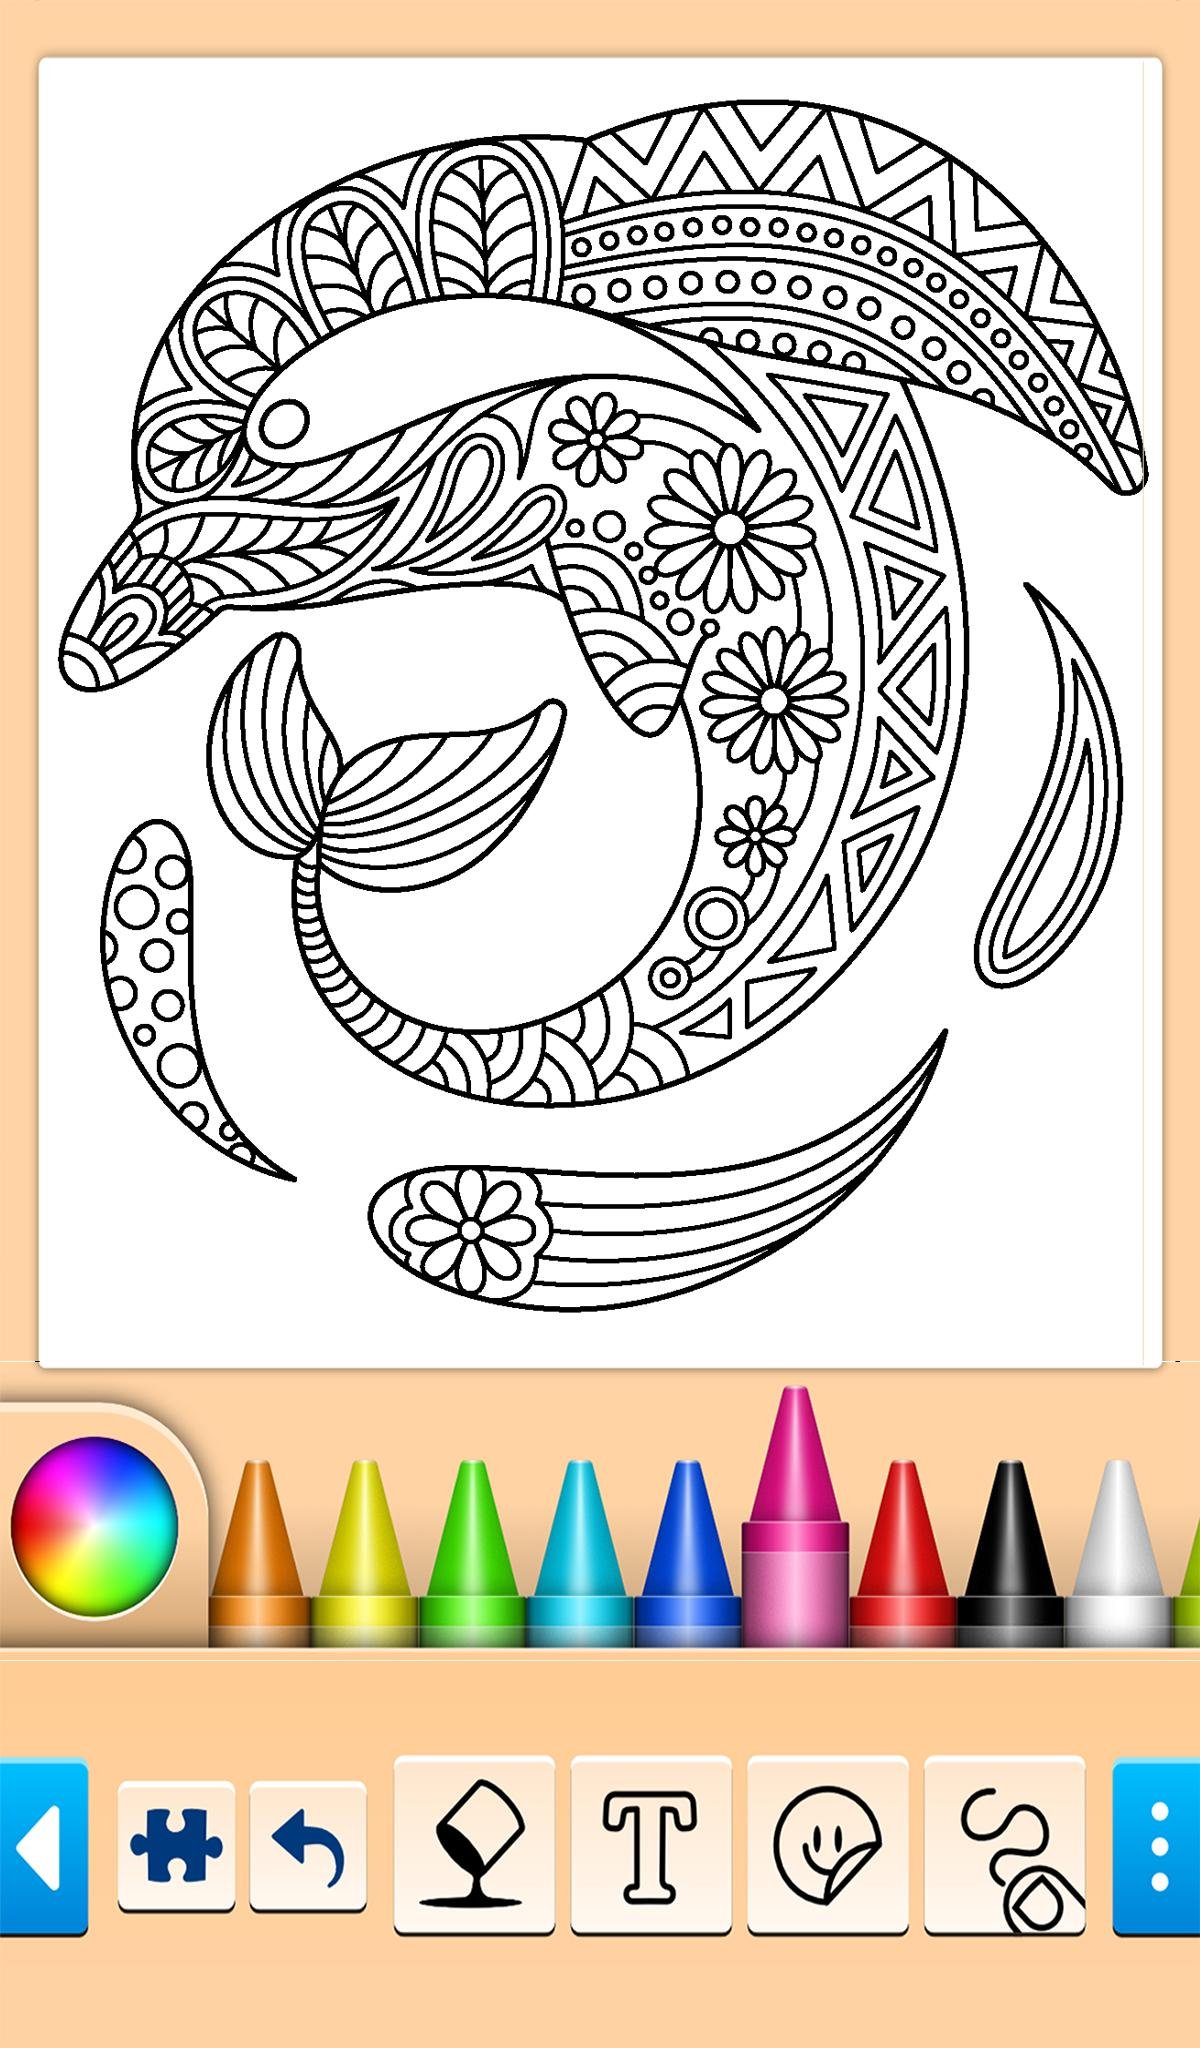 Animals: animal coloring book game poster